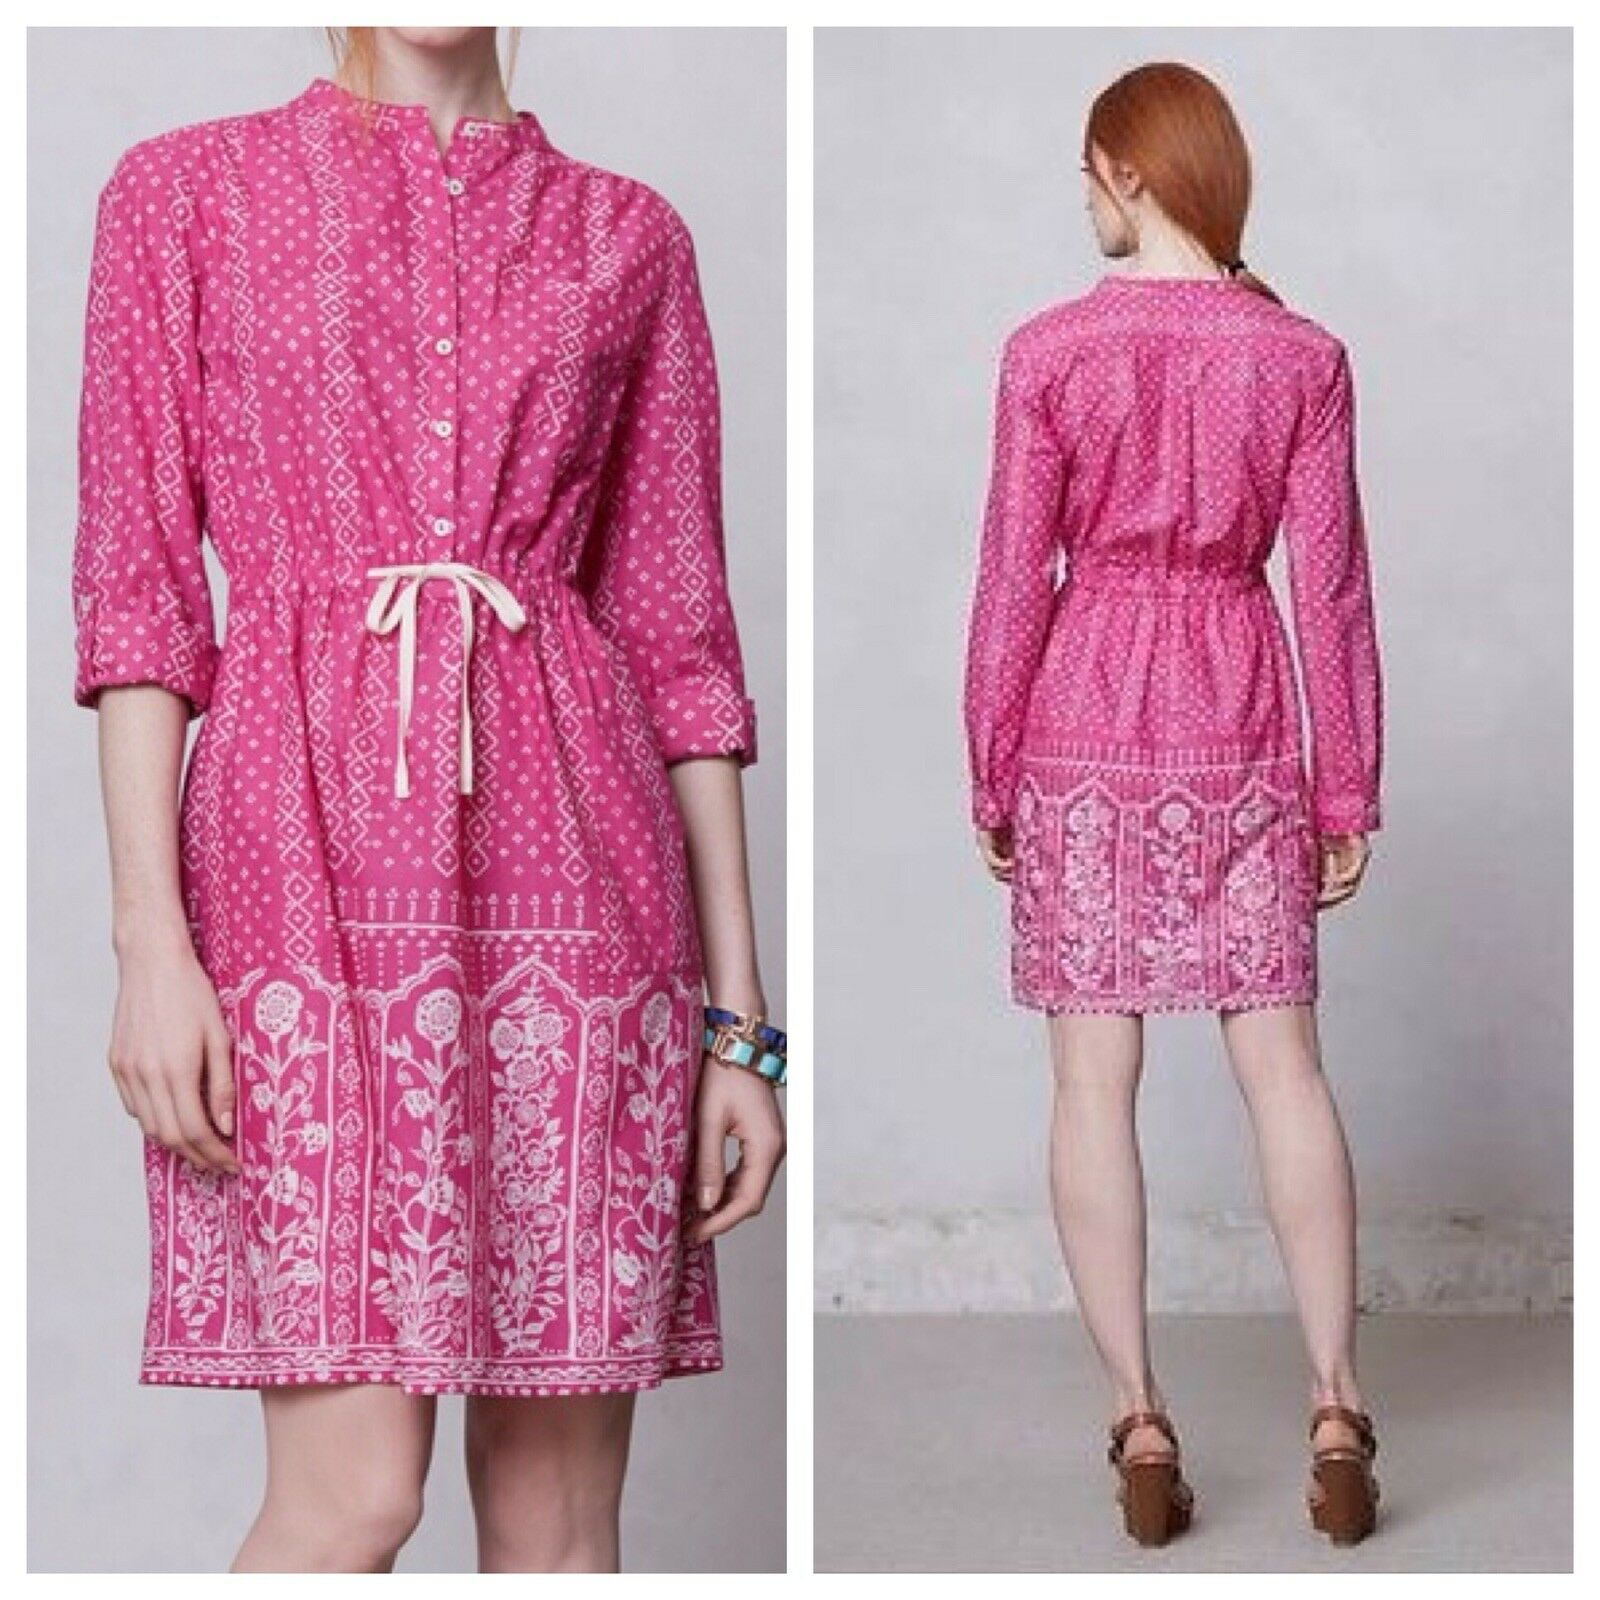 Anthropologie Meadow Rue Anilia Shirt Dress 4 Pink